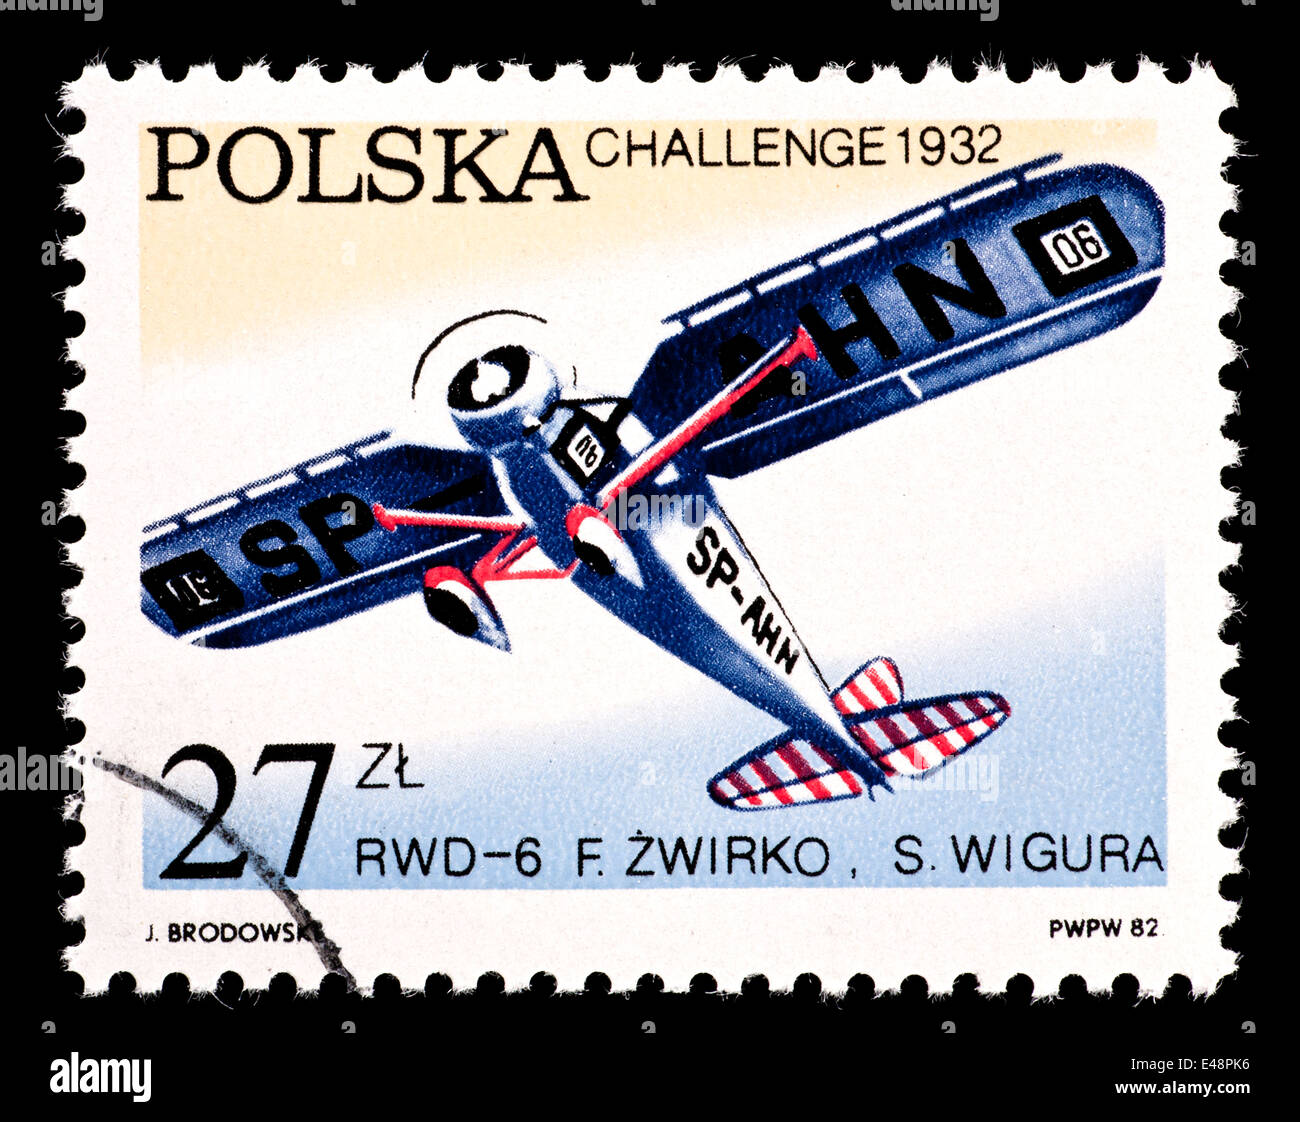 Postage stamp from Poland depicting an RWD-6 monoplane, for victories in the Challenge Trophy Flights. - Stock Image